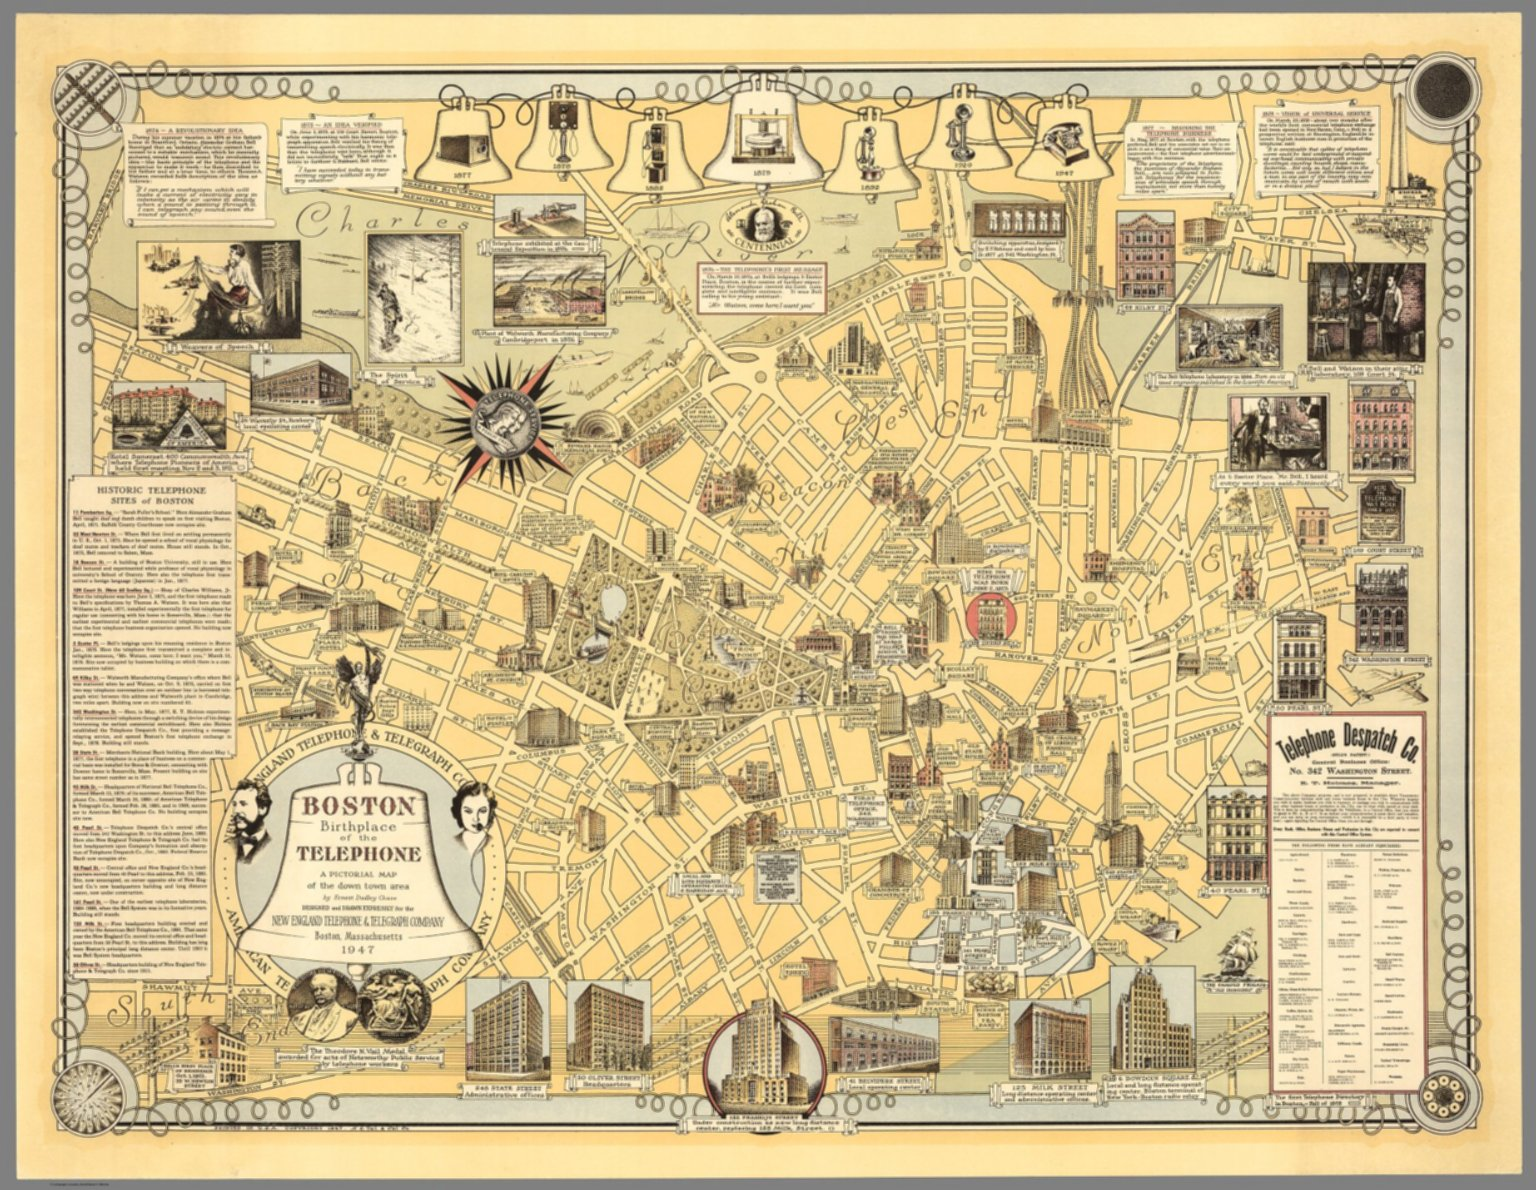 Boston Map Historical Sites.Boston Birthplace Of The Telephone A Pictorial Map Of The Down